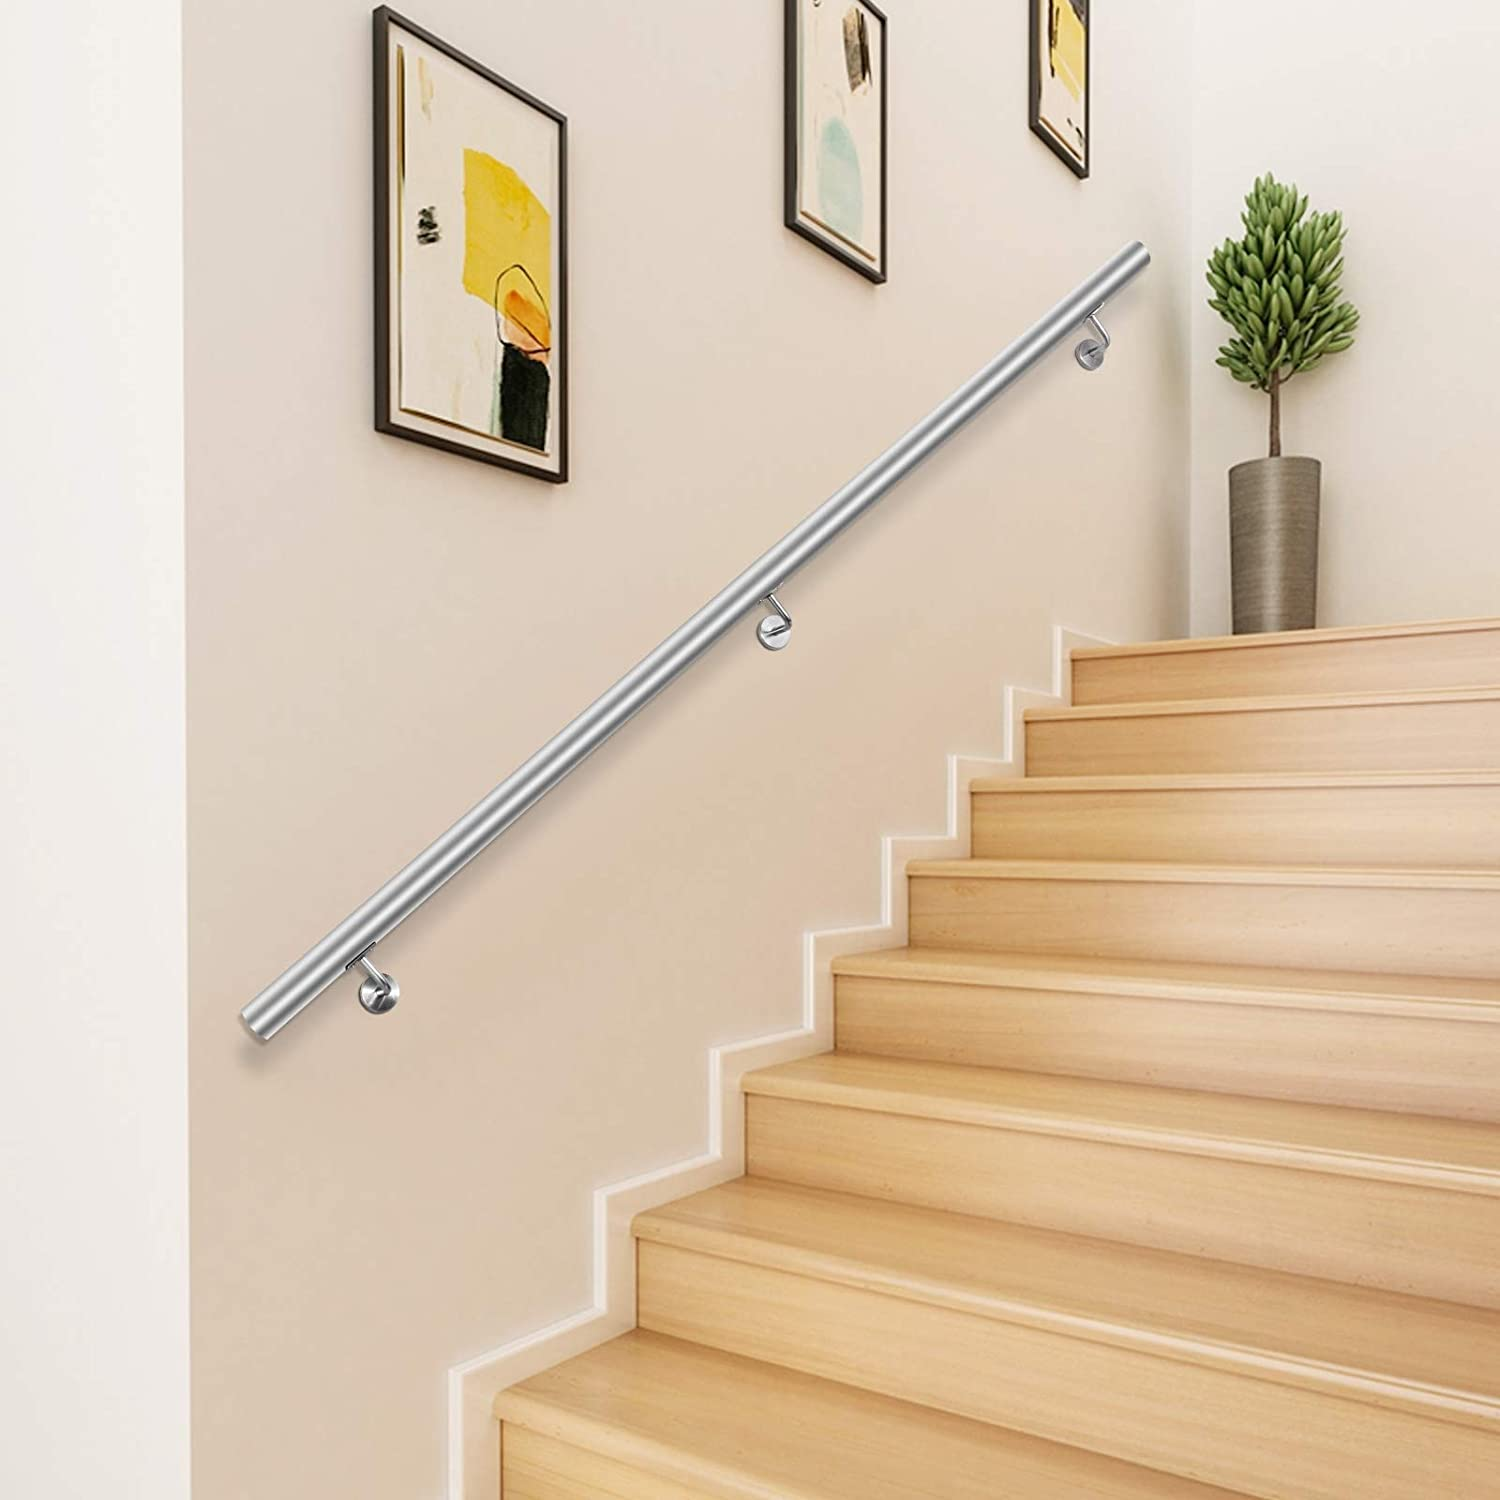 Happybuy 24 Feet Stair Handrail Stainless Steel Wall Stair Rail